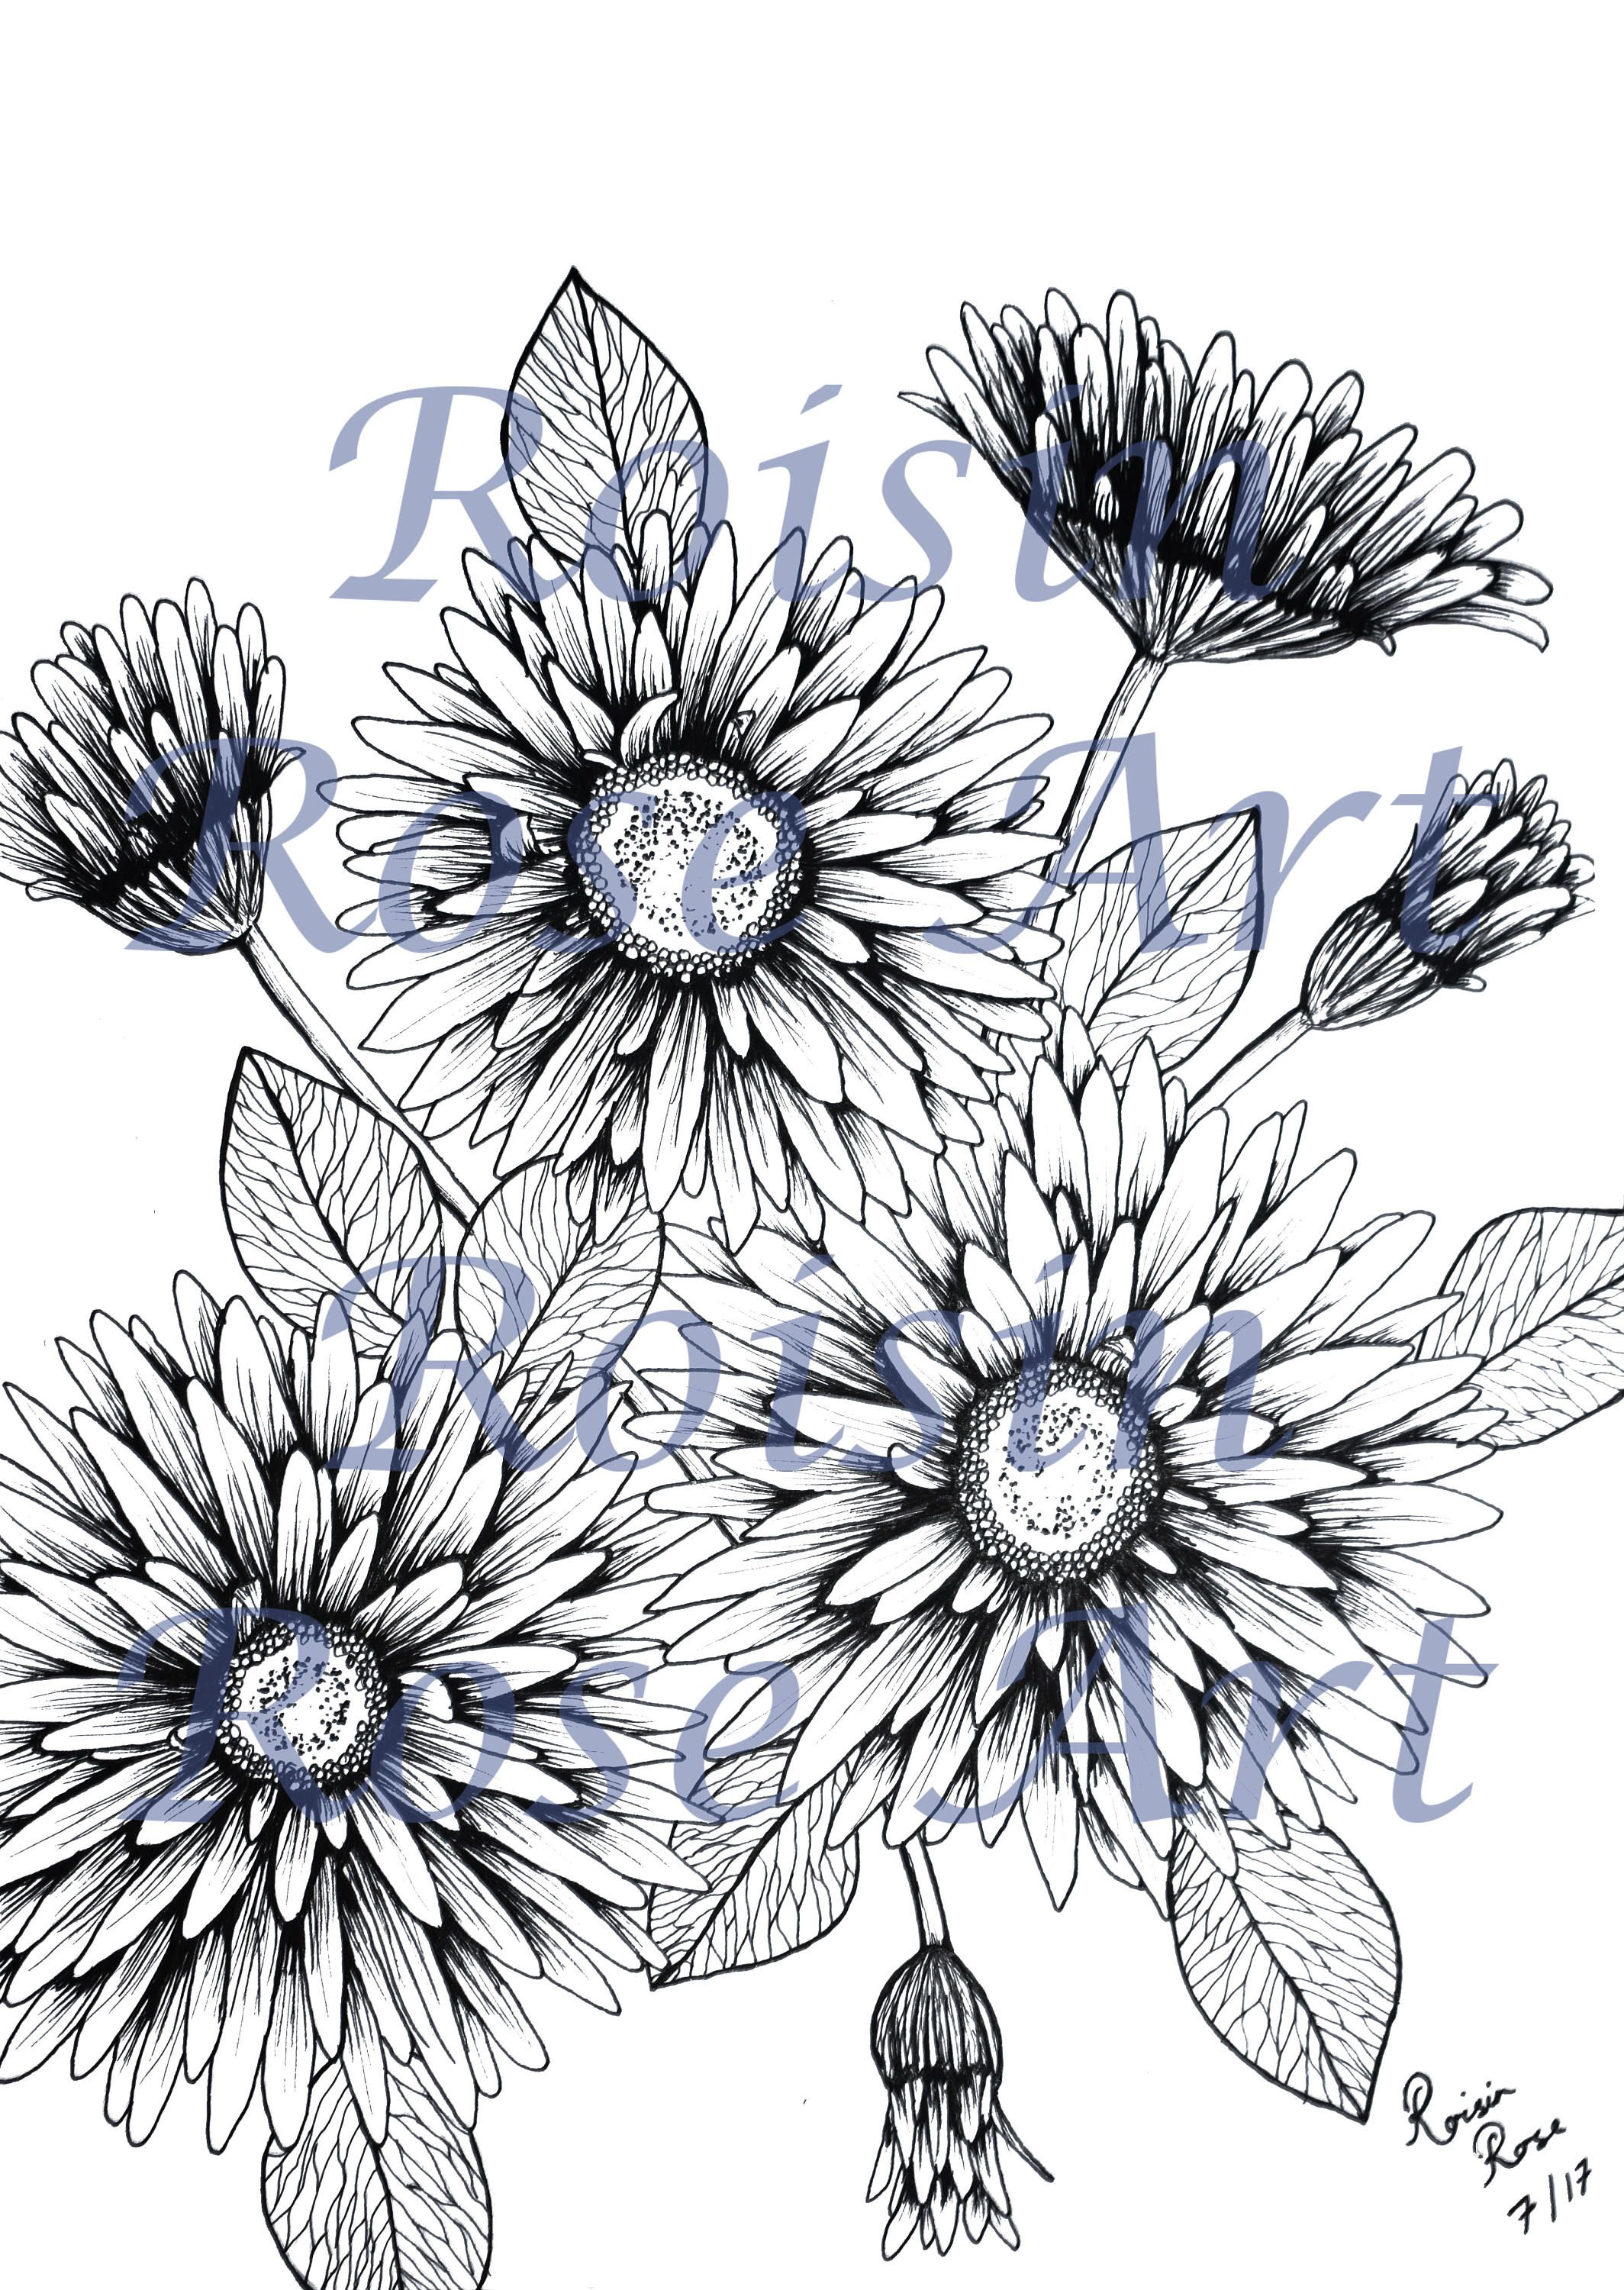 Floral colouring page instant download by roisinroseart on etsy